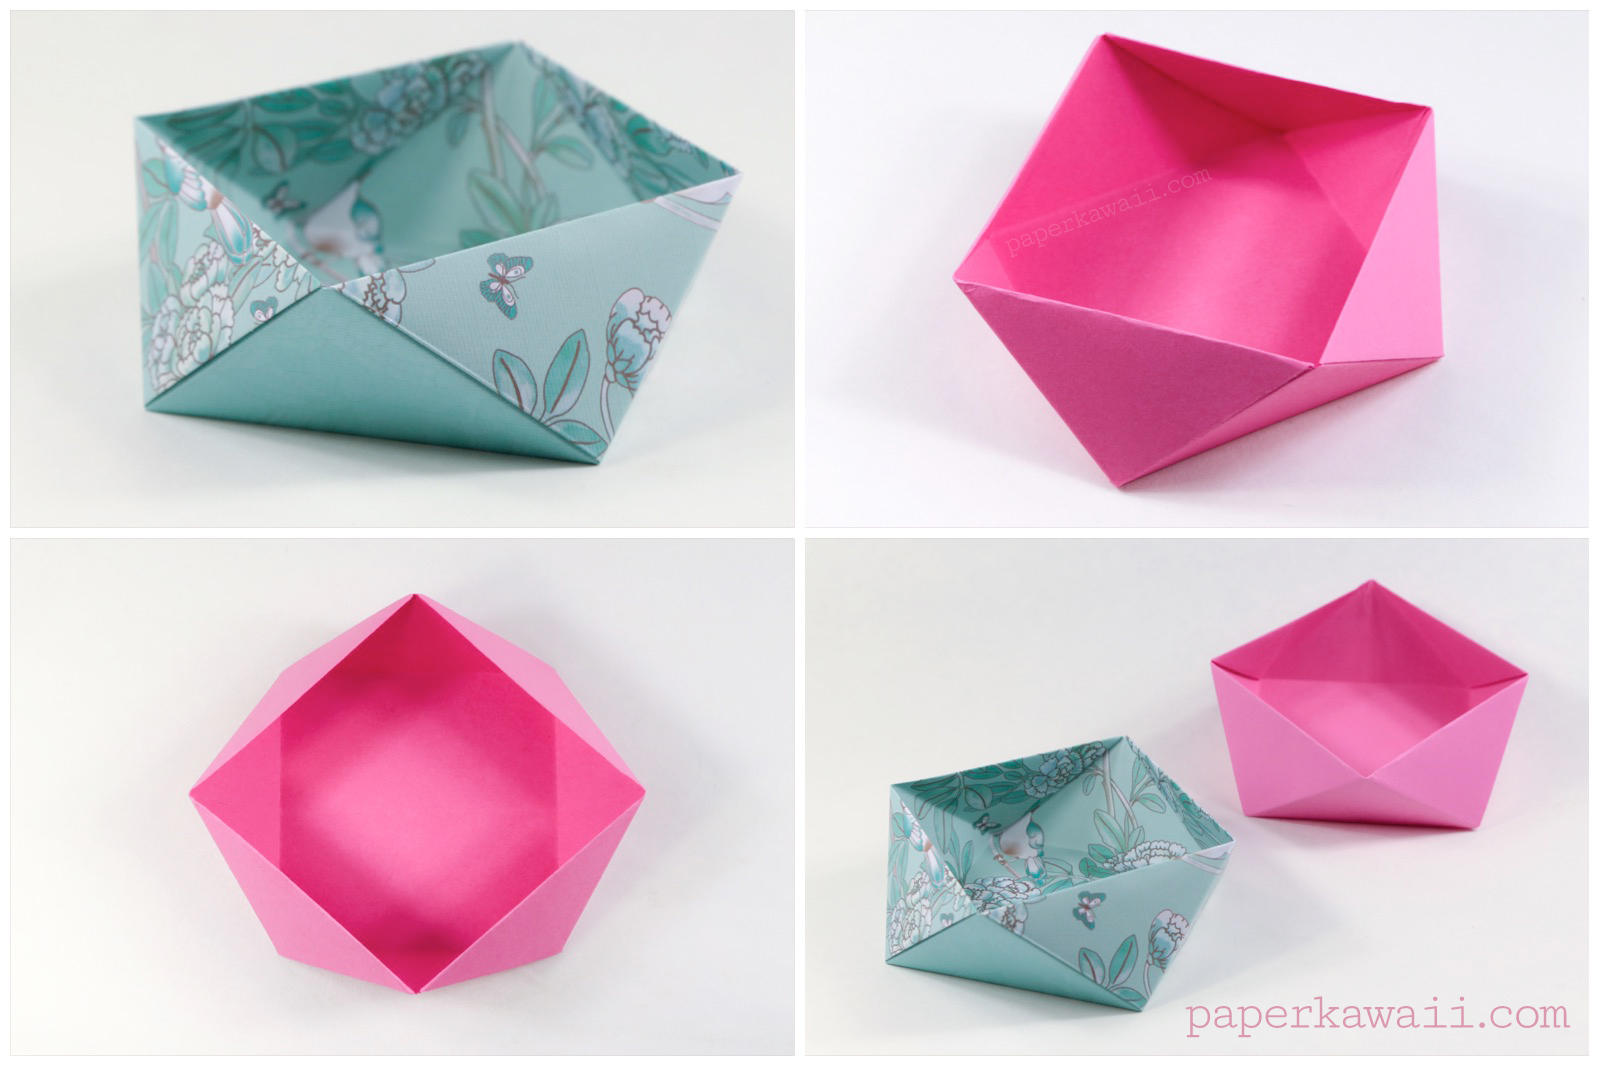 Learn Origami – Easy Origami Instructions -Videos for ...